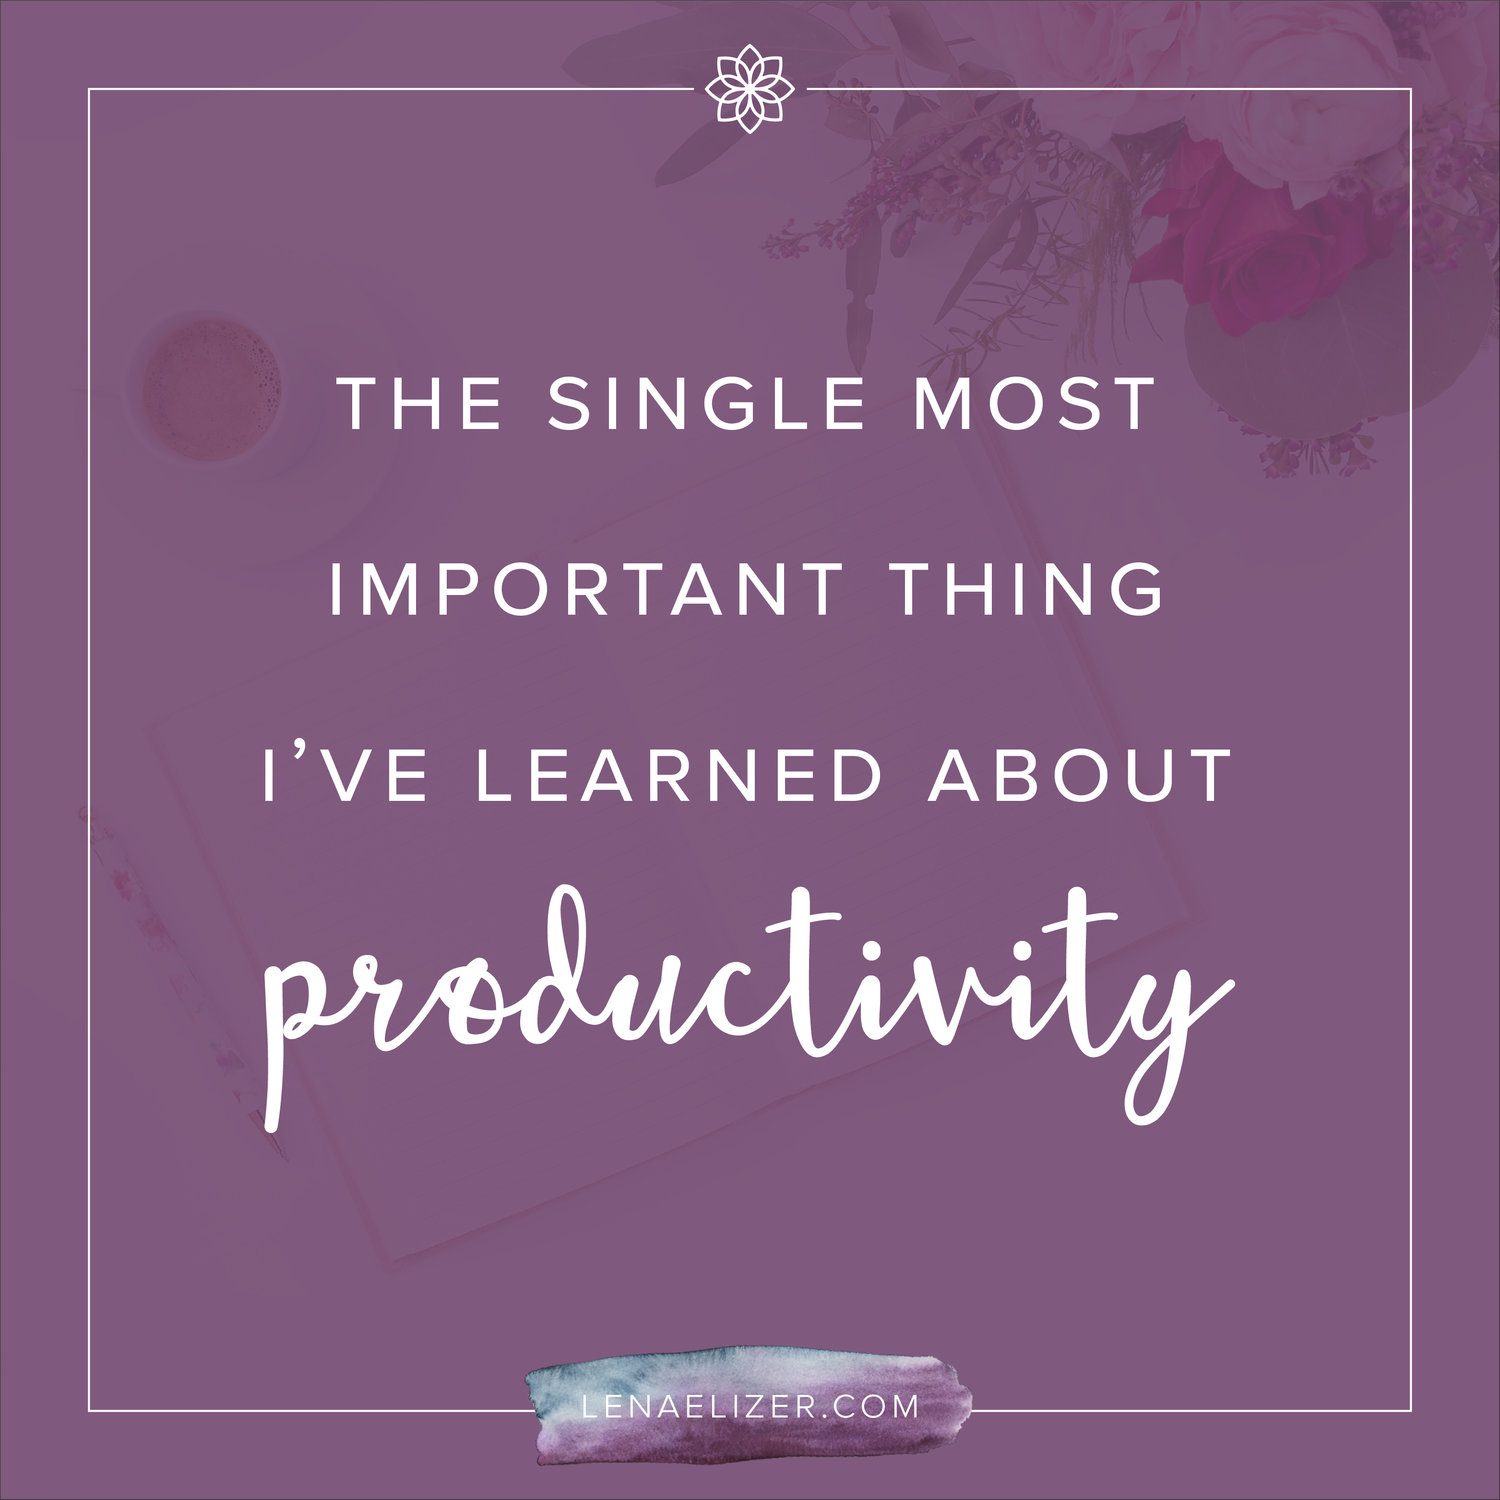 About Productivity the single most important thing i've learned about